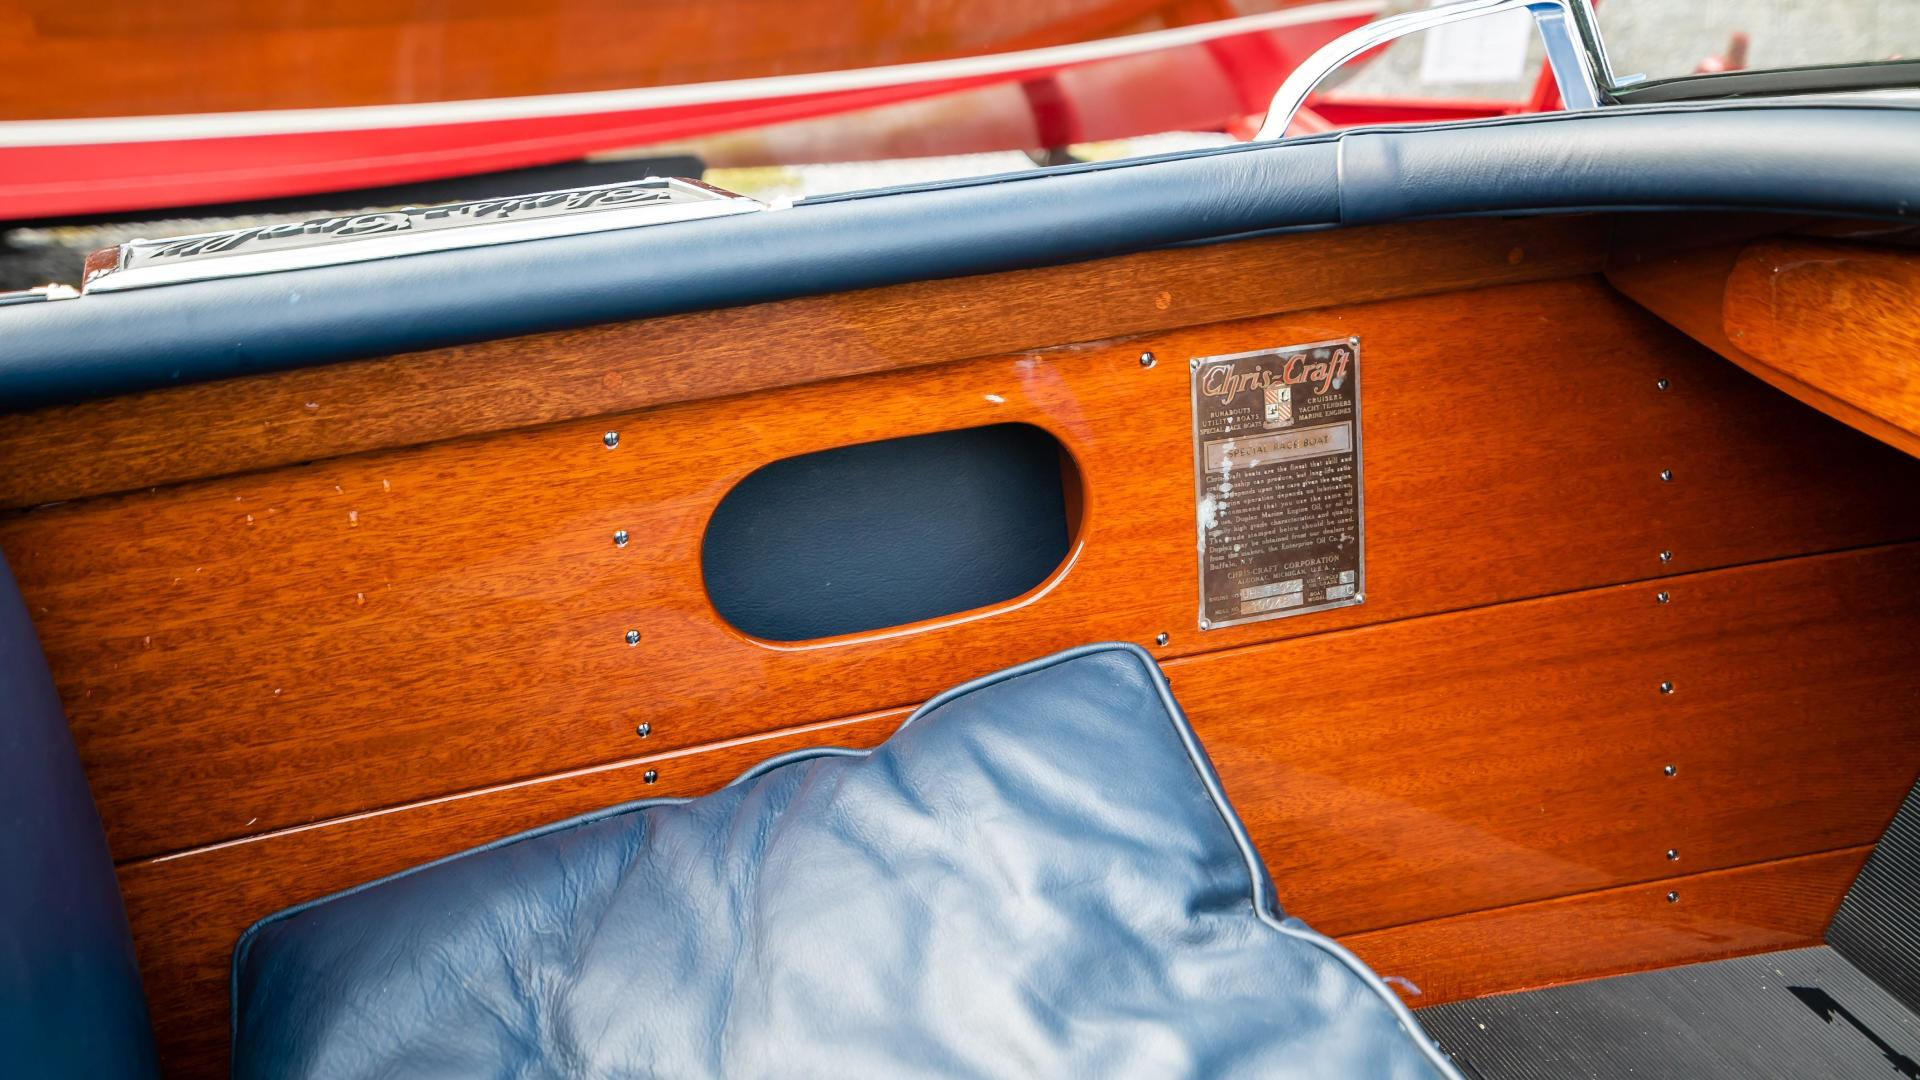 Chris-Craft-Special Race boat 1937 -Clayton-New York-United States-1546468 | Thumbnail